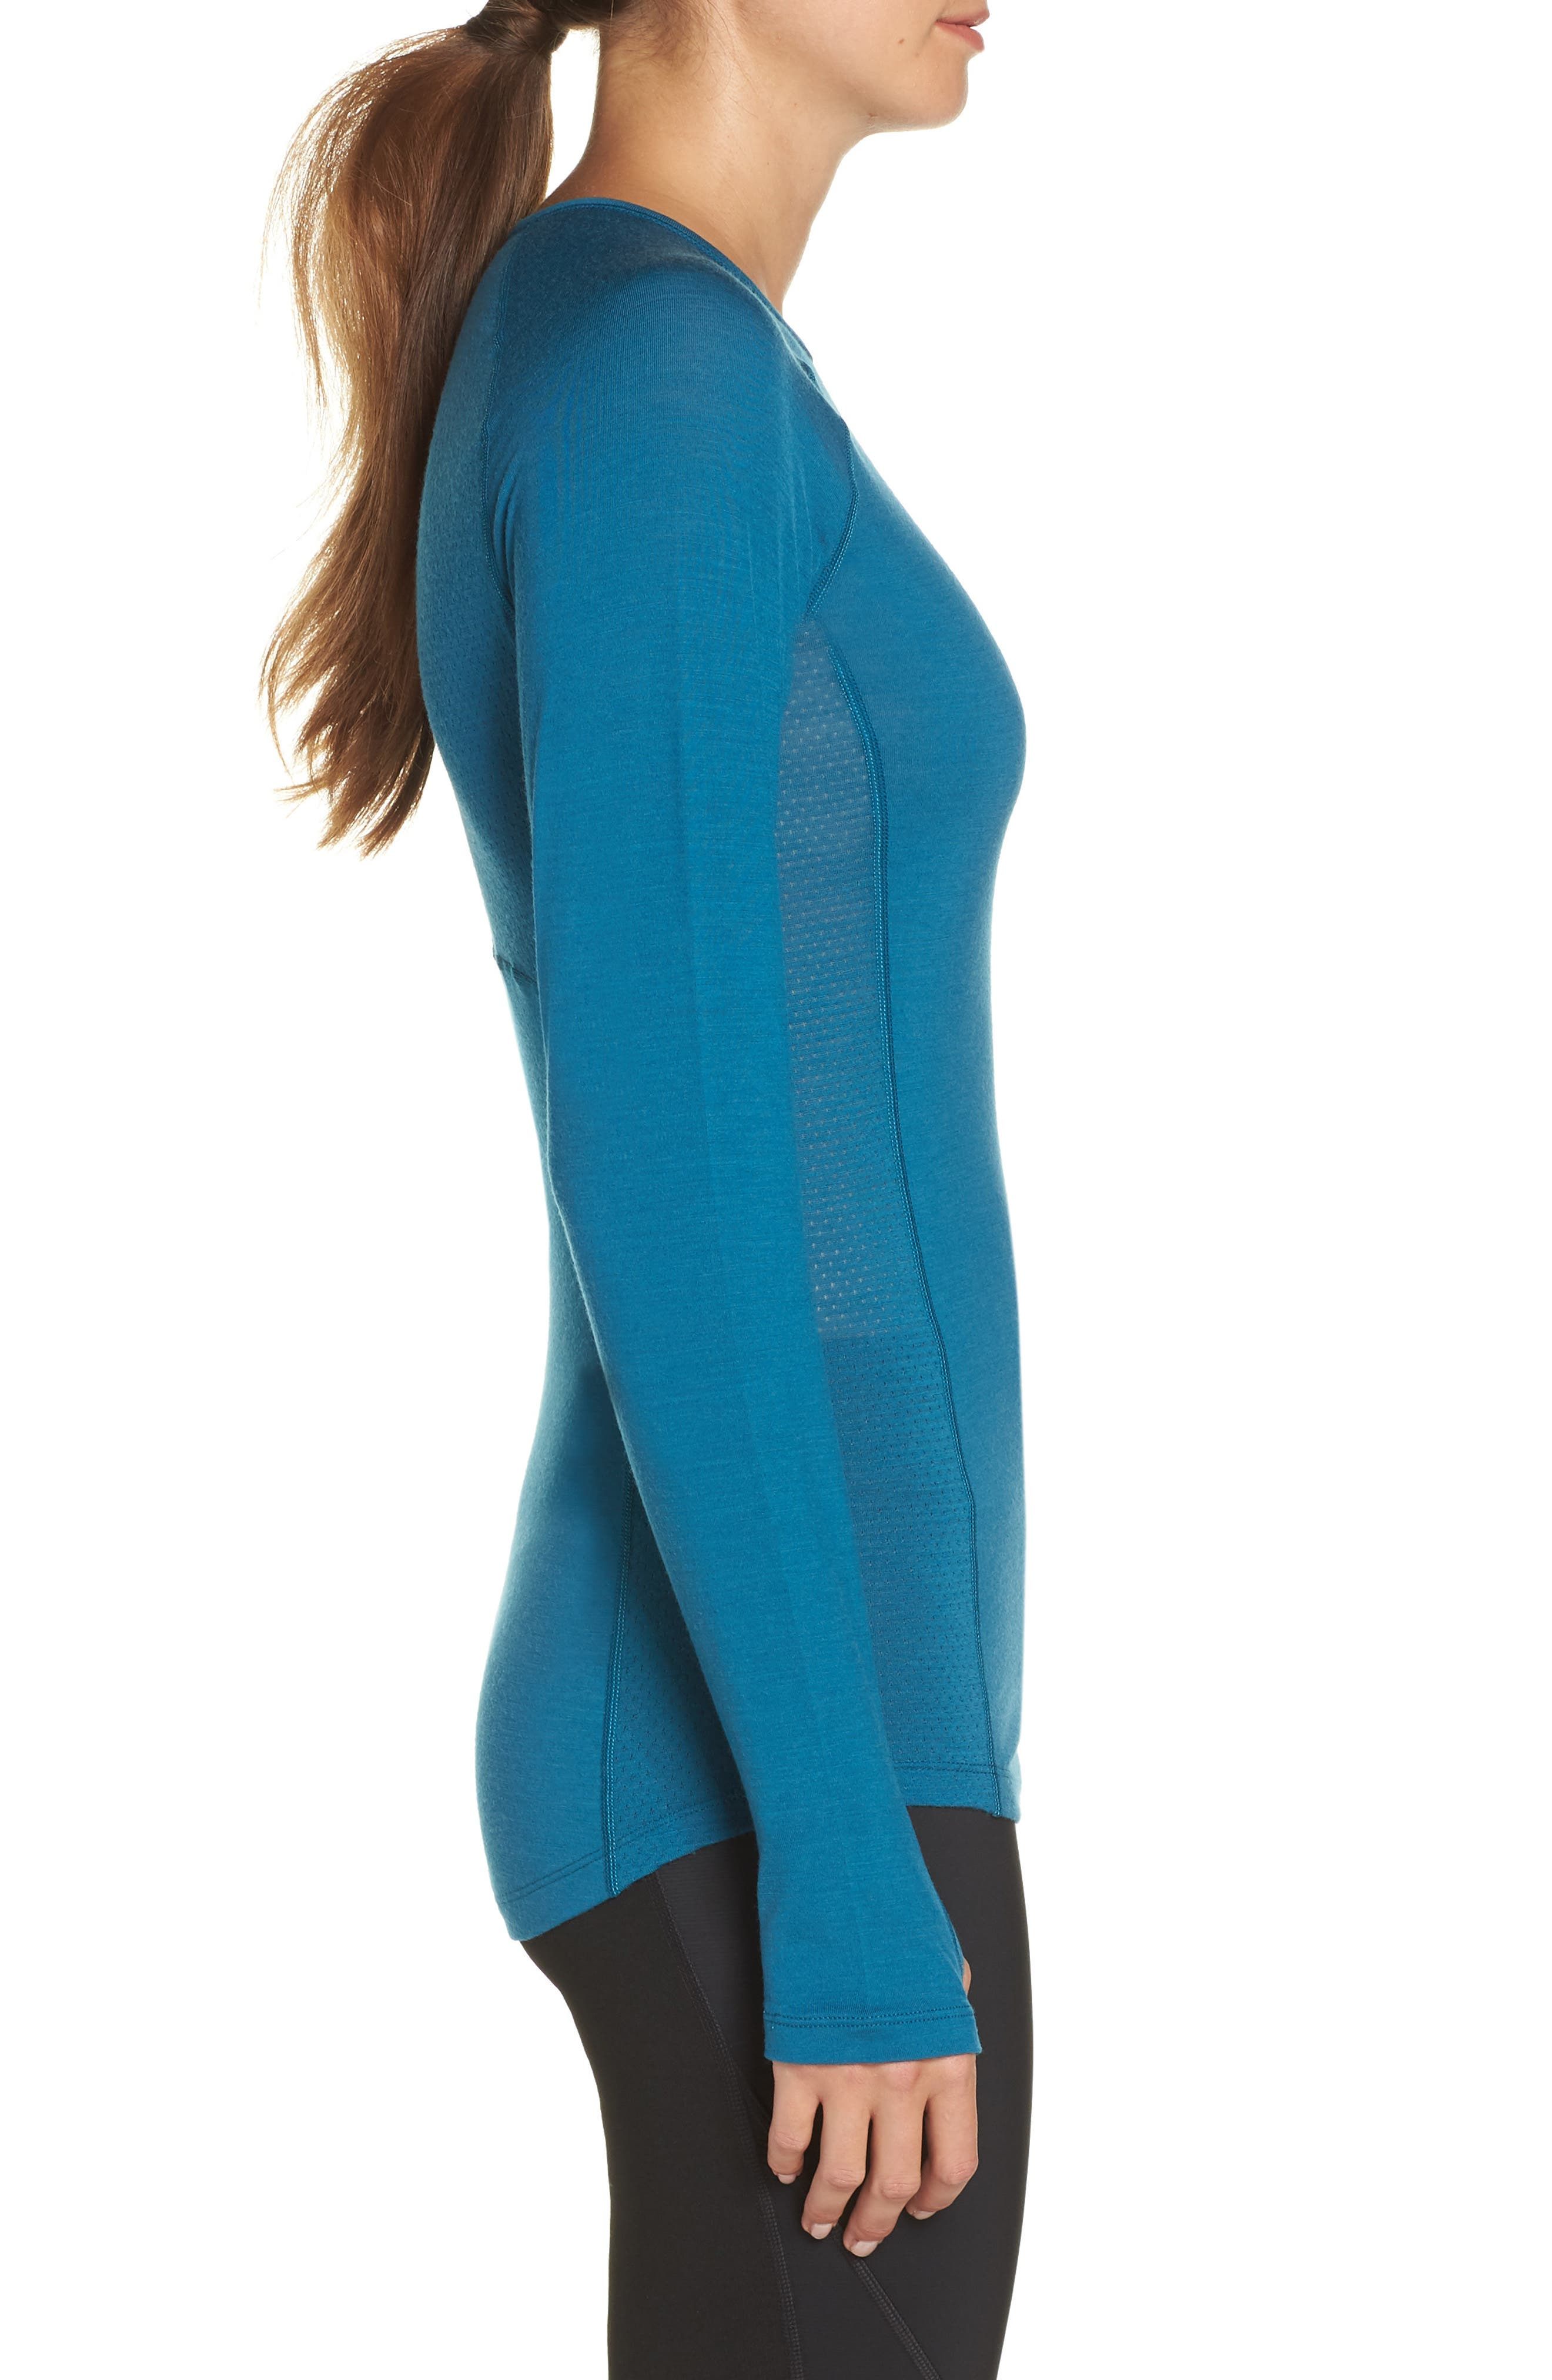 BodyfitZONE<sup>™</sup> 150 Zone Merino Wool Blend Base Layer Tee,                             Alternate thumbnail 3, color,                             KING FISCHER/ ARCTIC TEAL